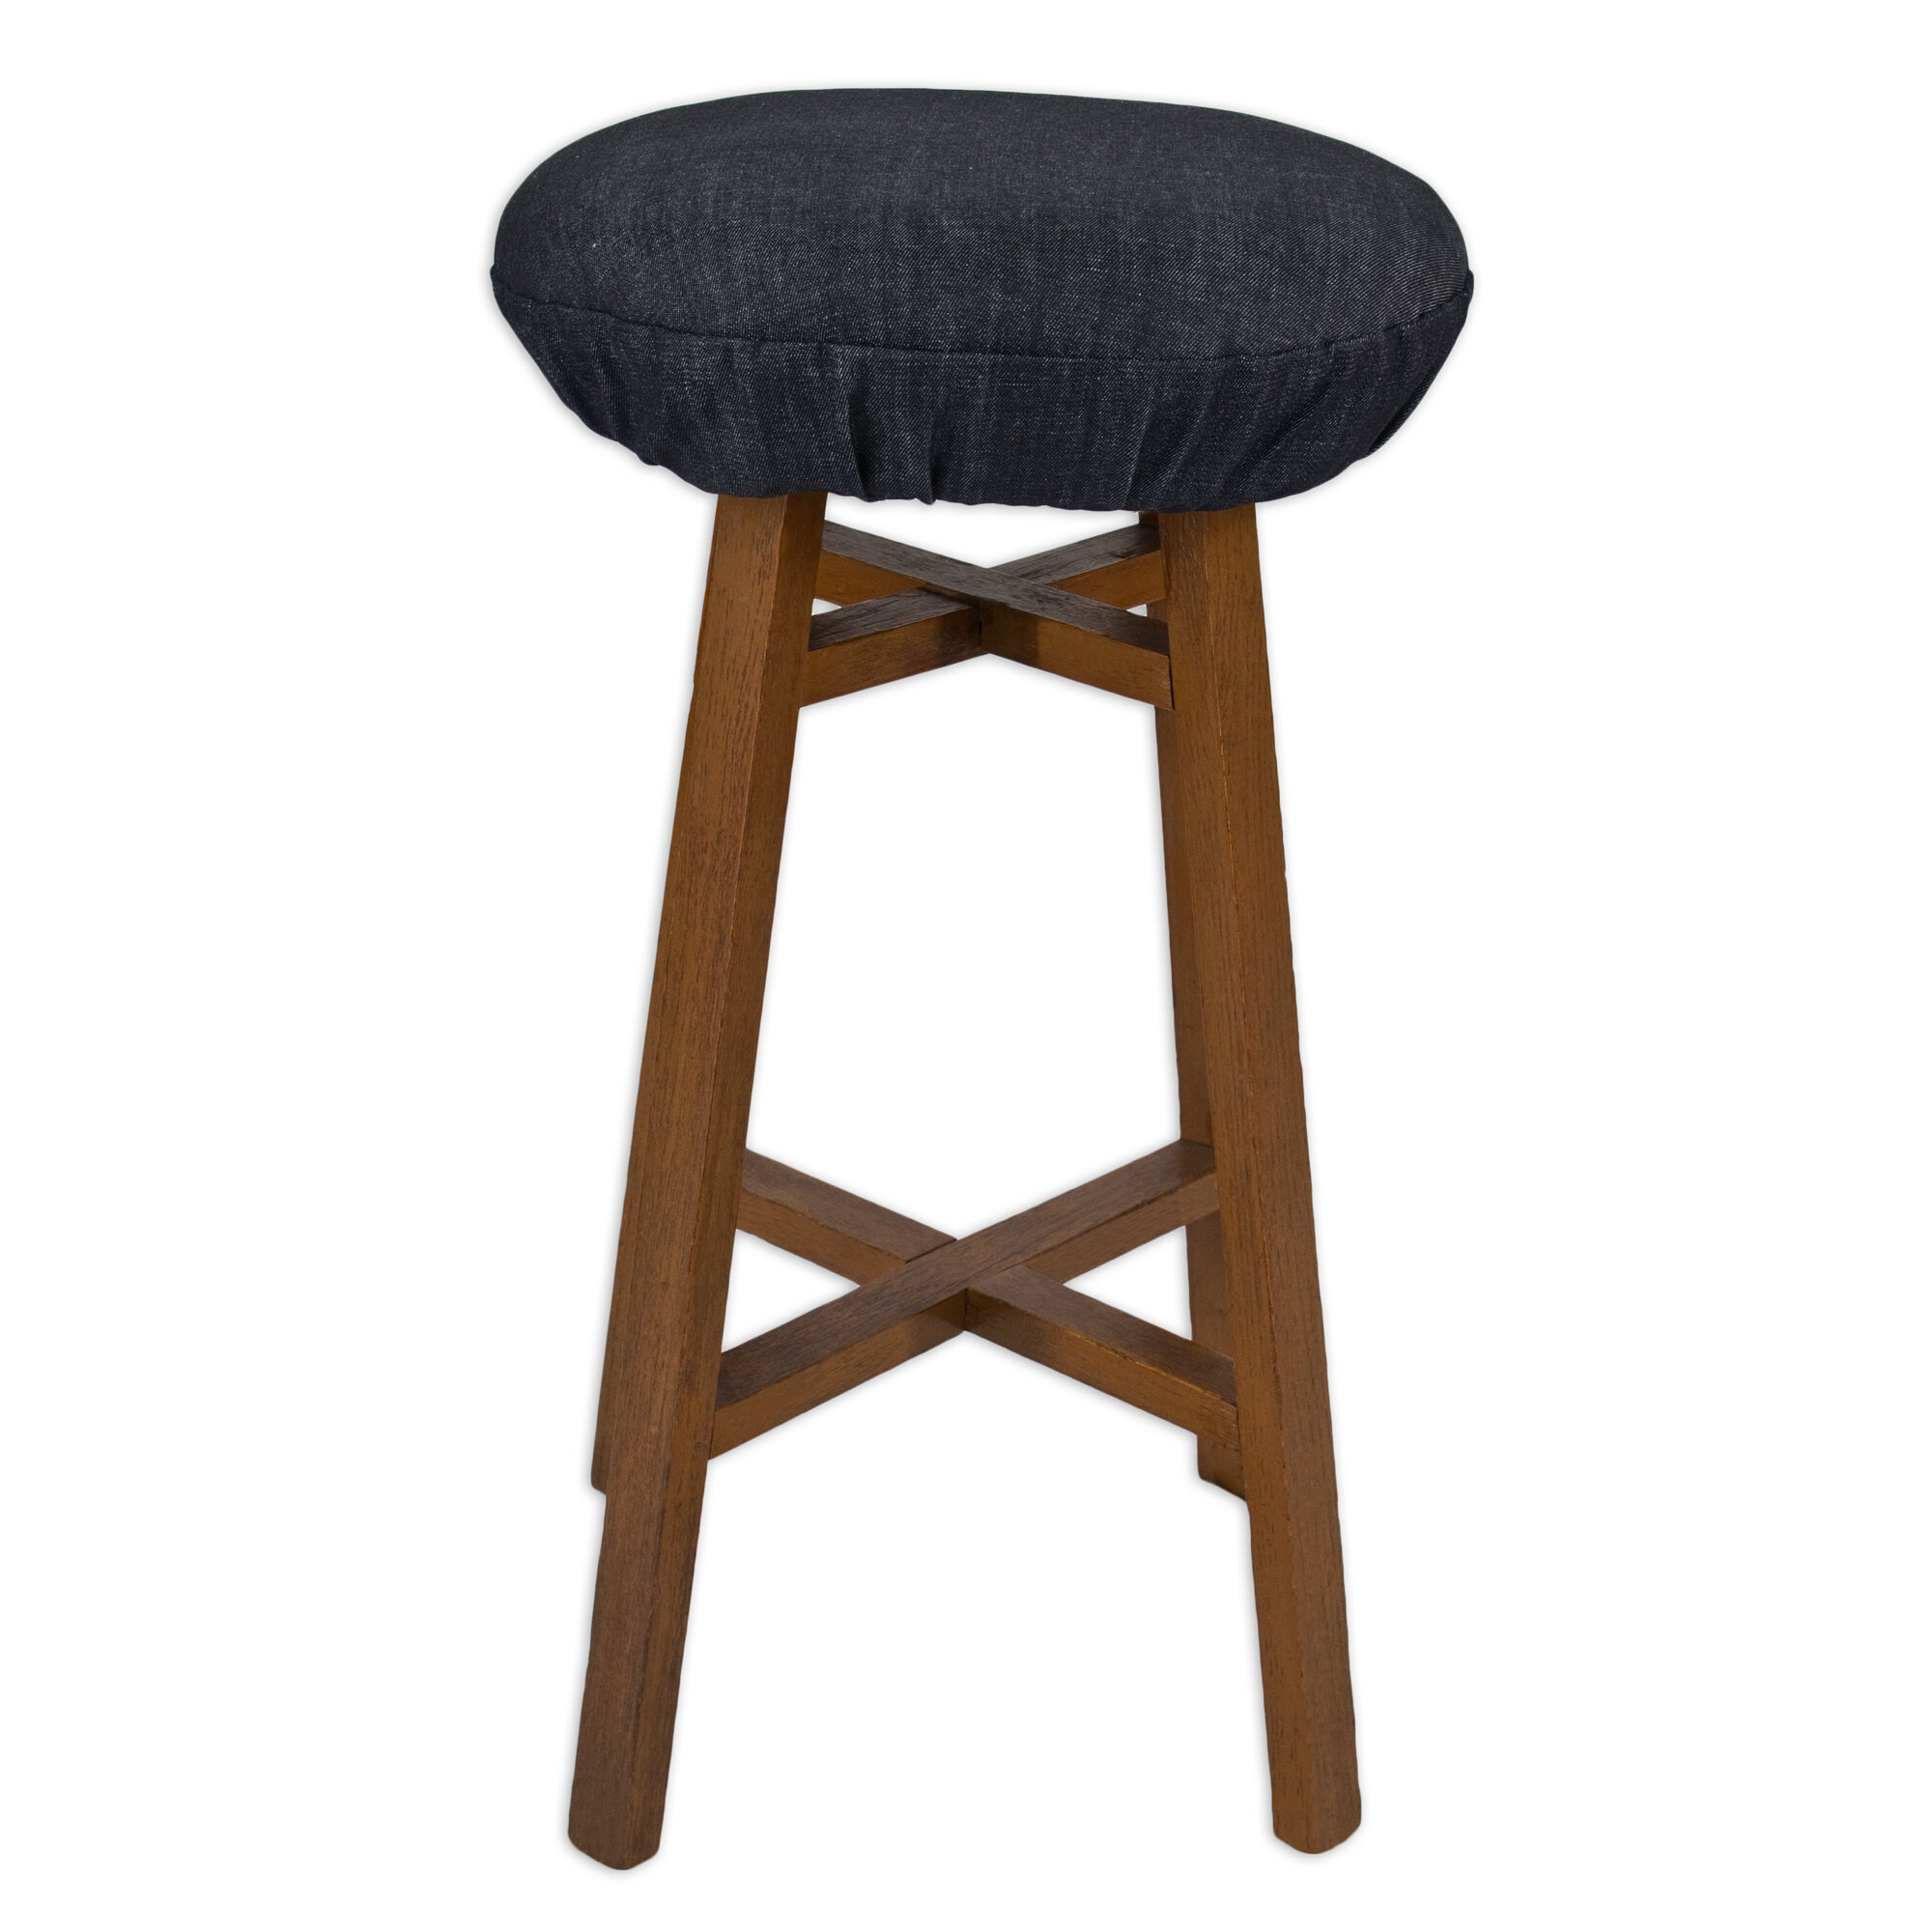 Denim Round Foam BAR Stool Cushion eBay : 1 from ebay.com.au size 2000 x 2000 jpeg 288kB